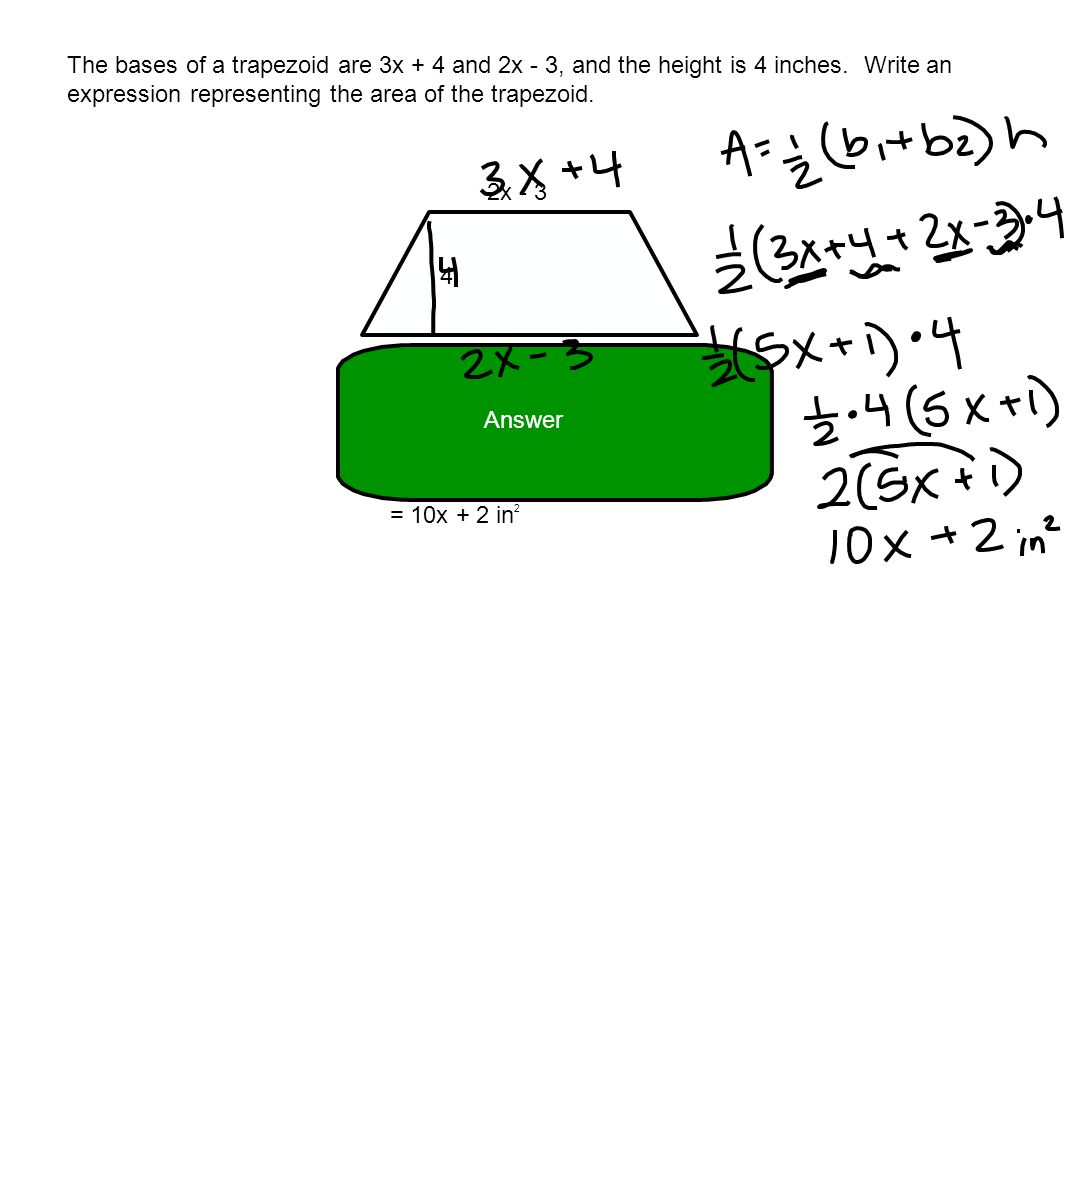 How To Find The Area Of A Trapezoid Without Height Or Area By Lynn Abbey The